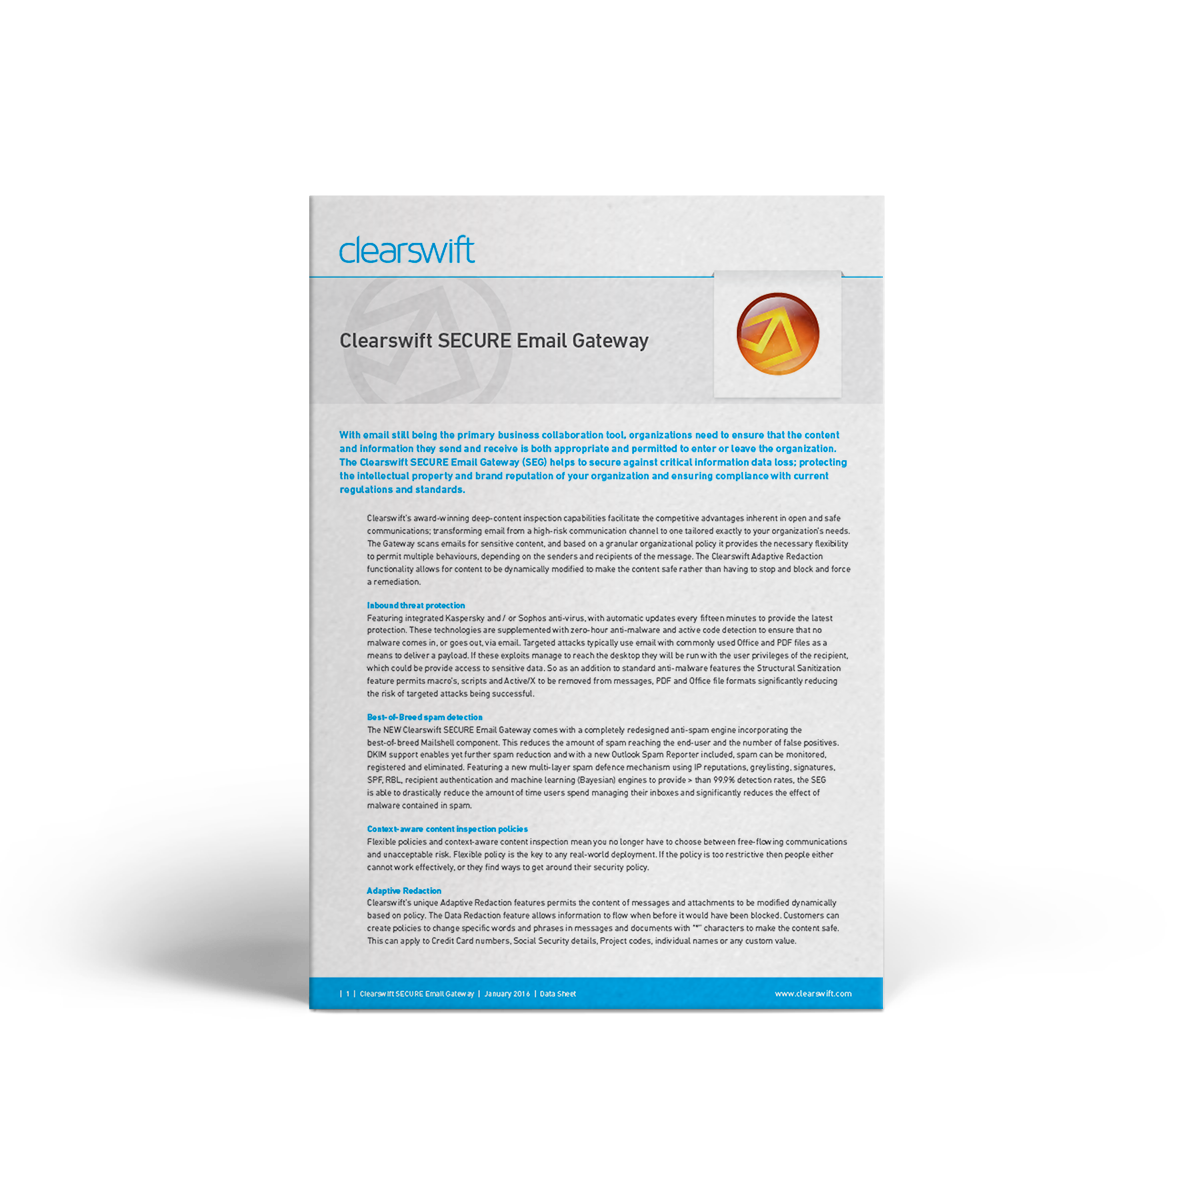 Email Security Products | Clearswift